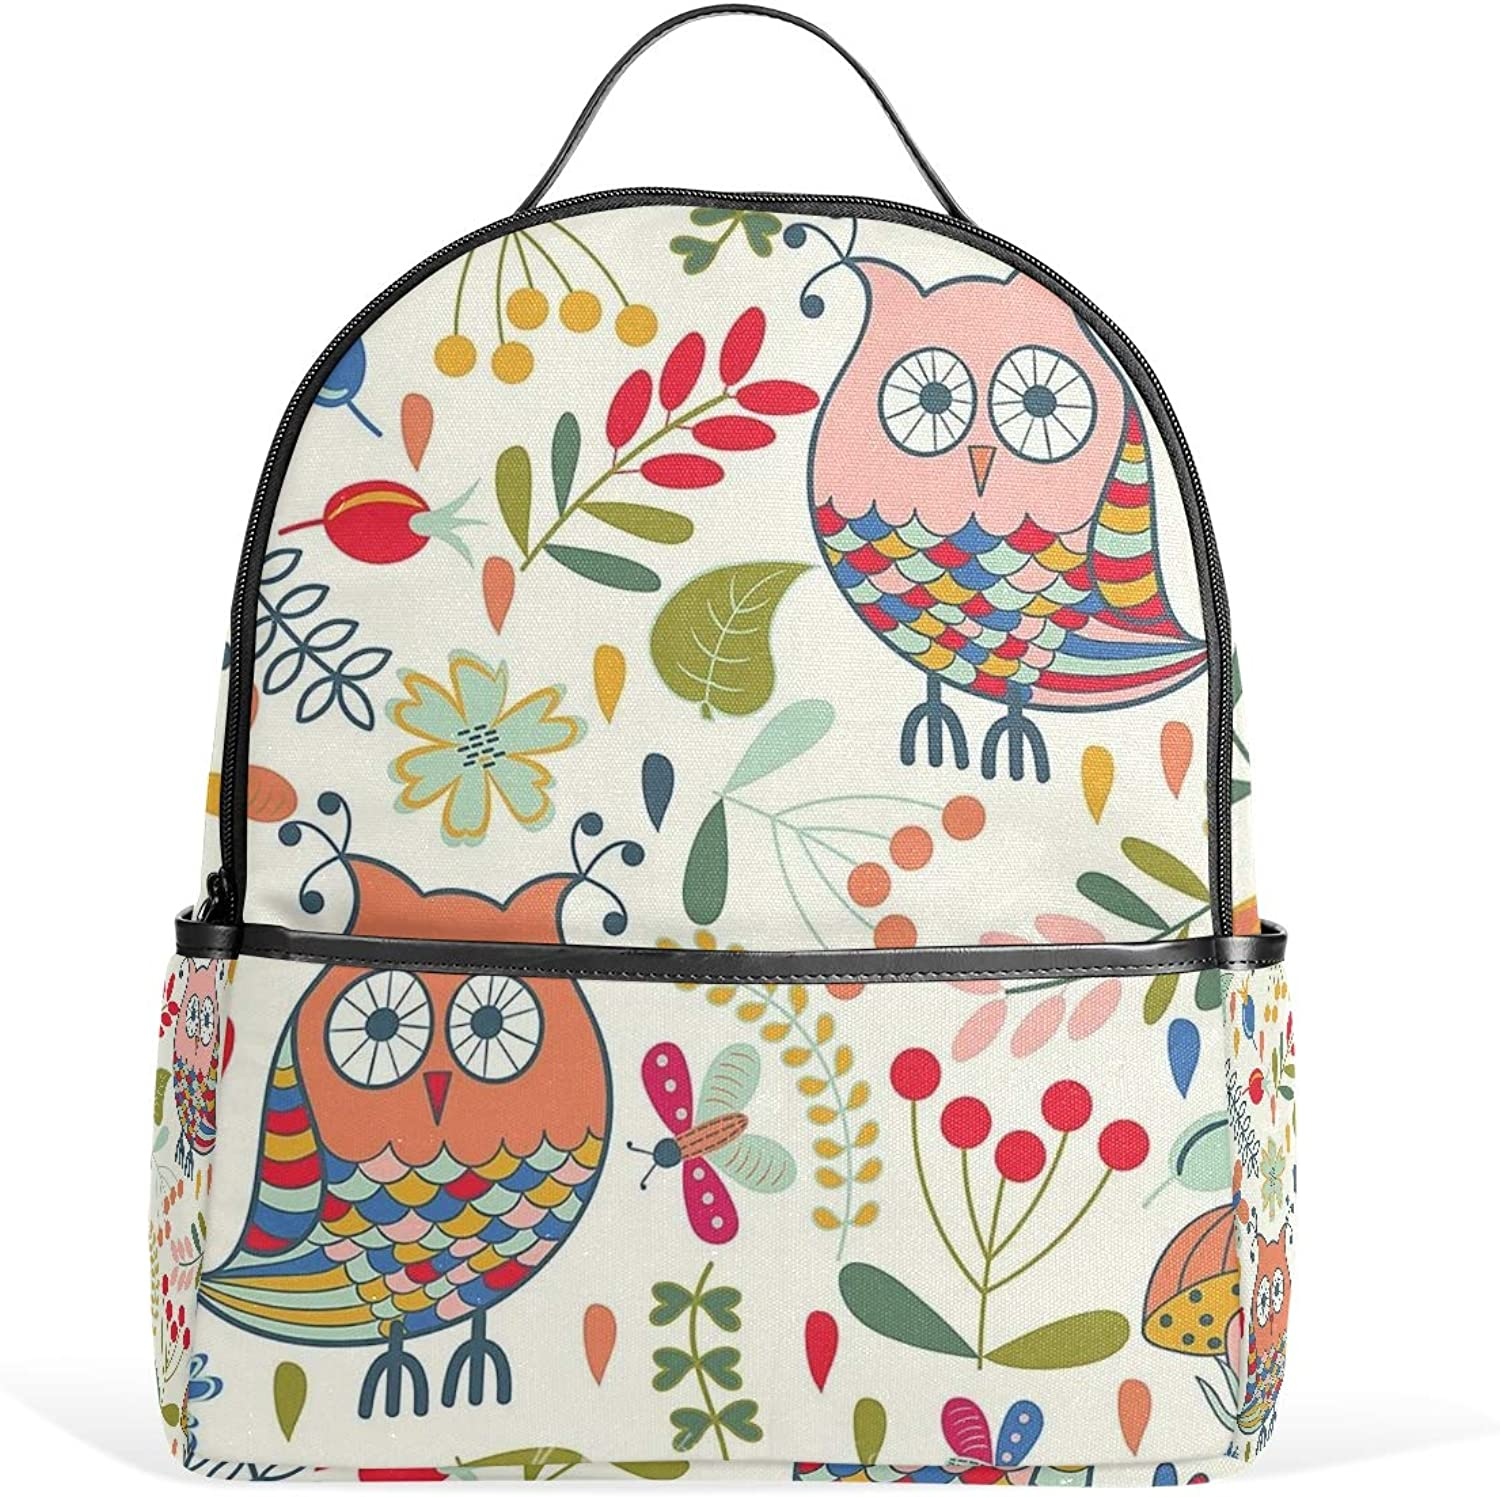 colorful Owls Backpack for Men Women Back Pack Bag College Daypacks Teenagers's Travel bagpacks Casual Daypack for Travel